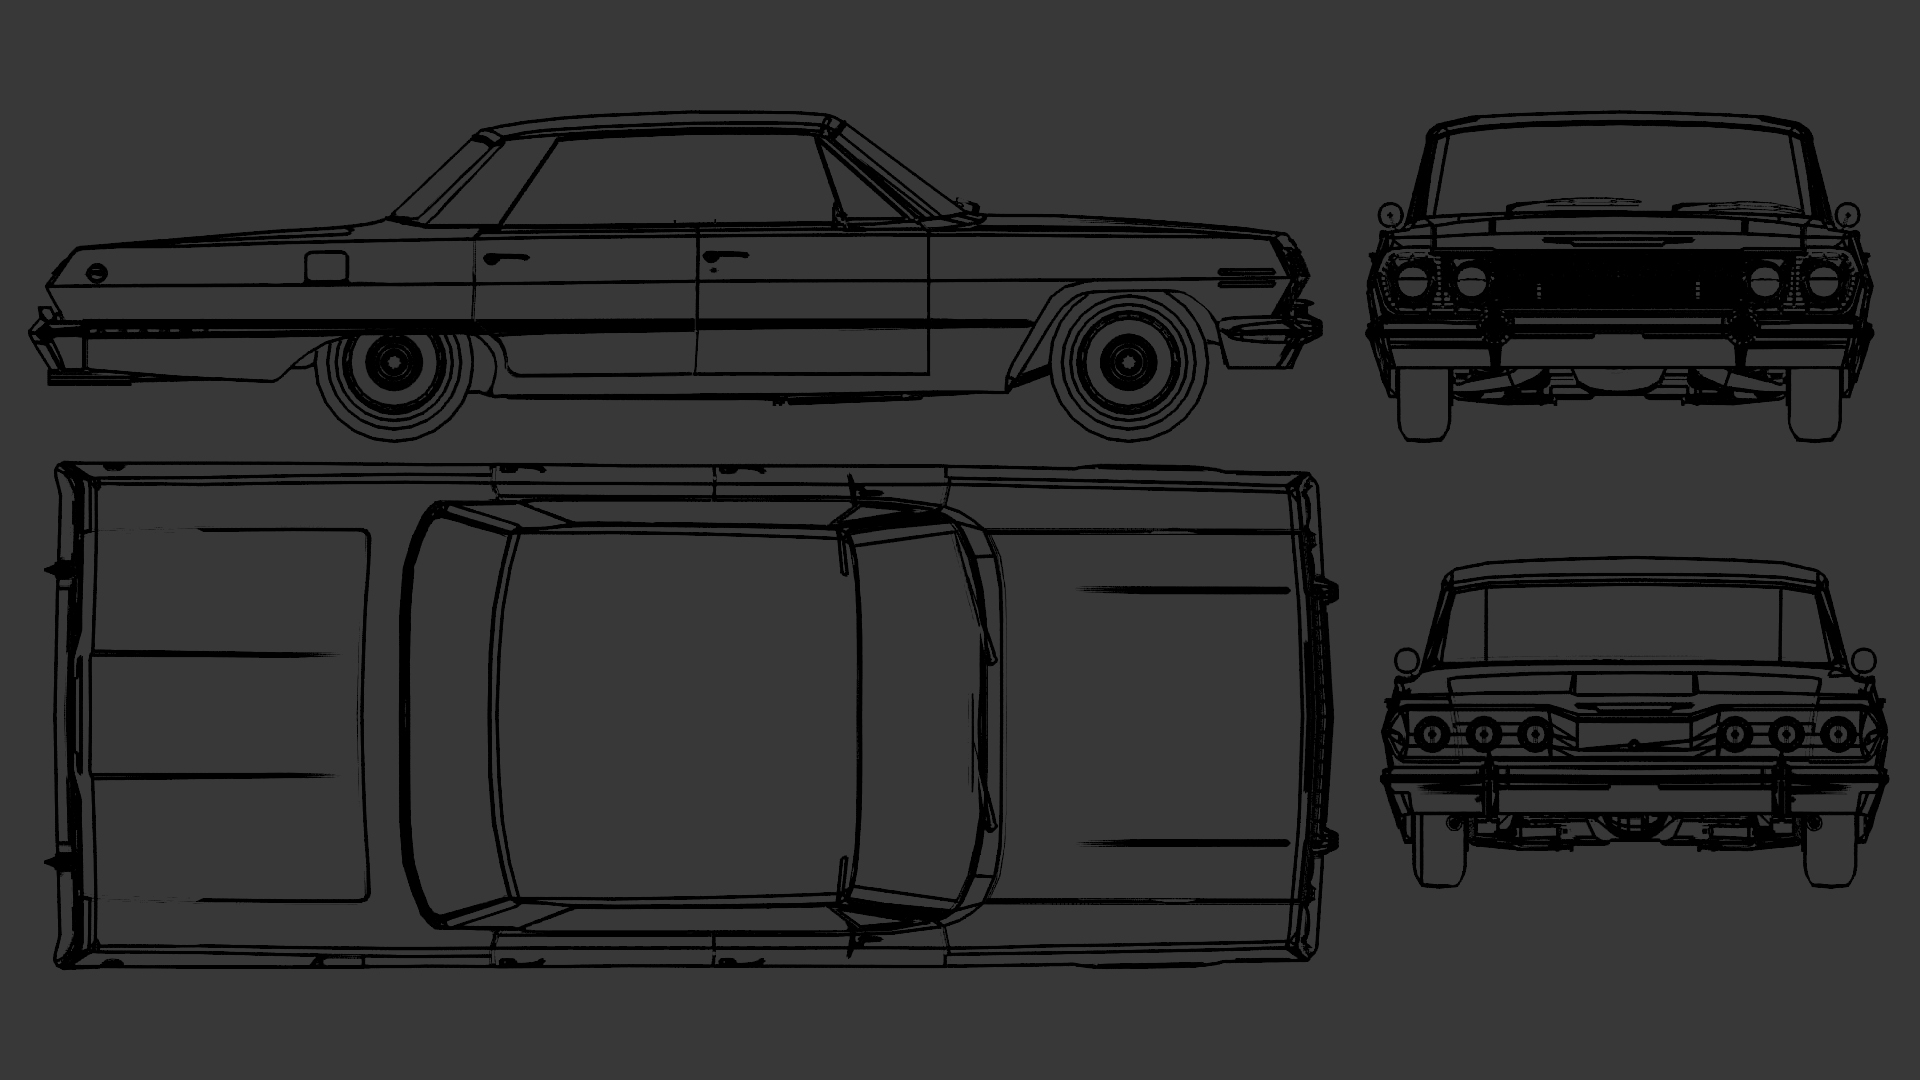 Chevrolet Impala blueprint